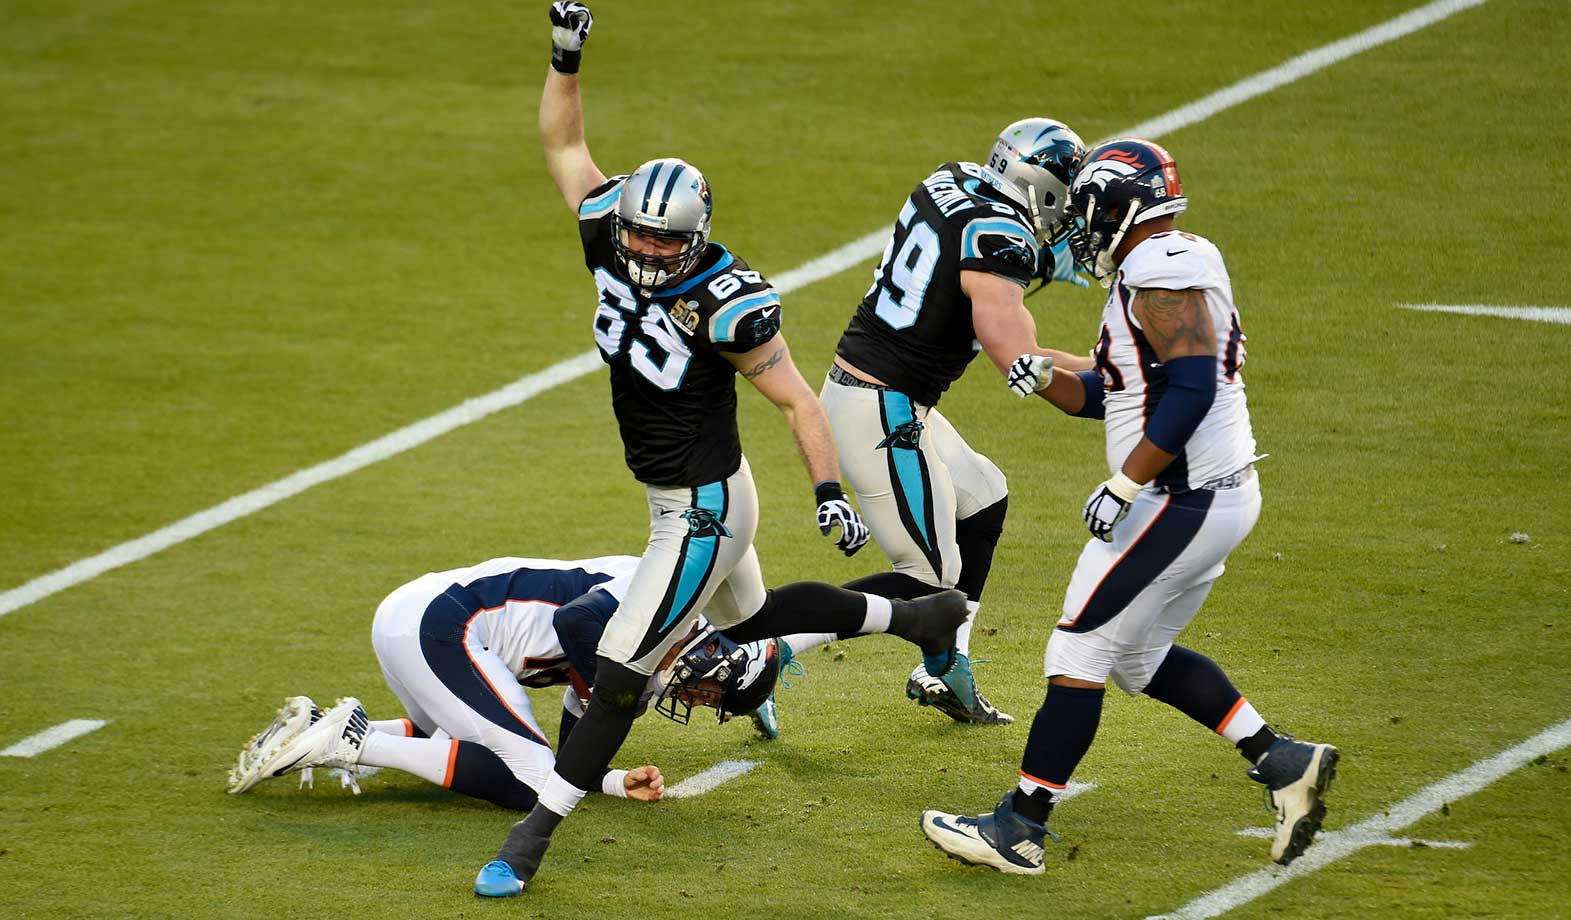 Carolina held Denver to 194 yards gained, the fewest for a Super Bowl winner